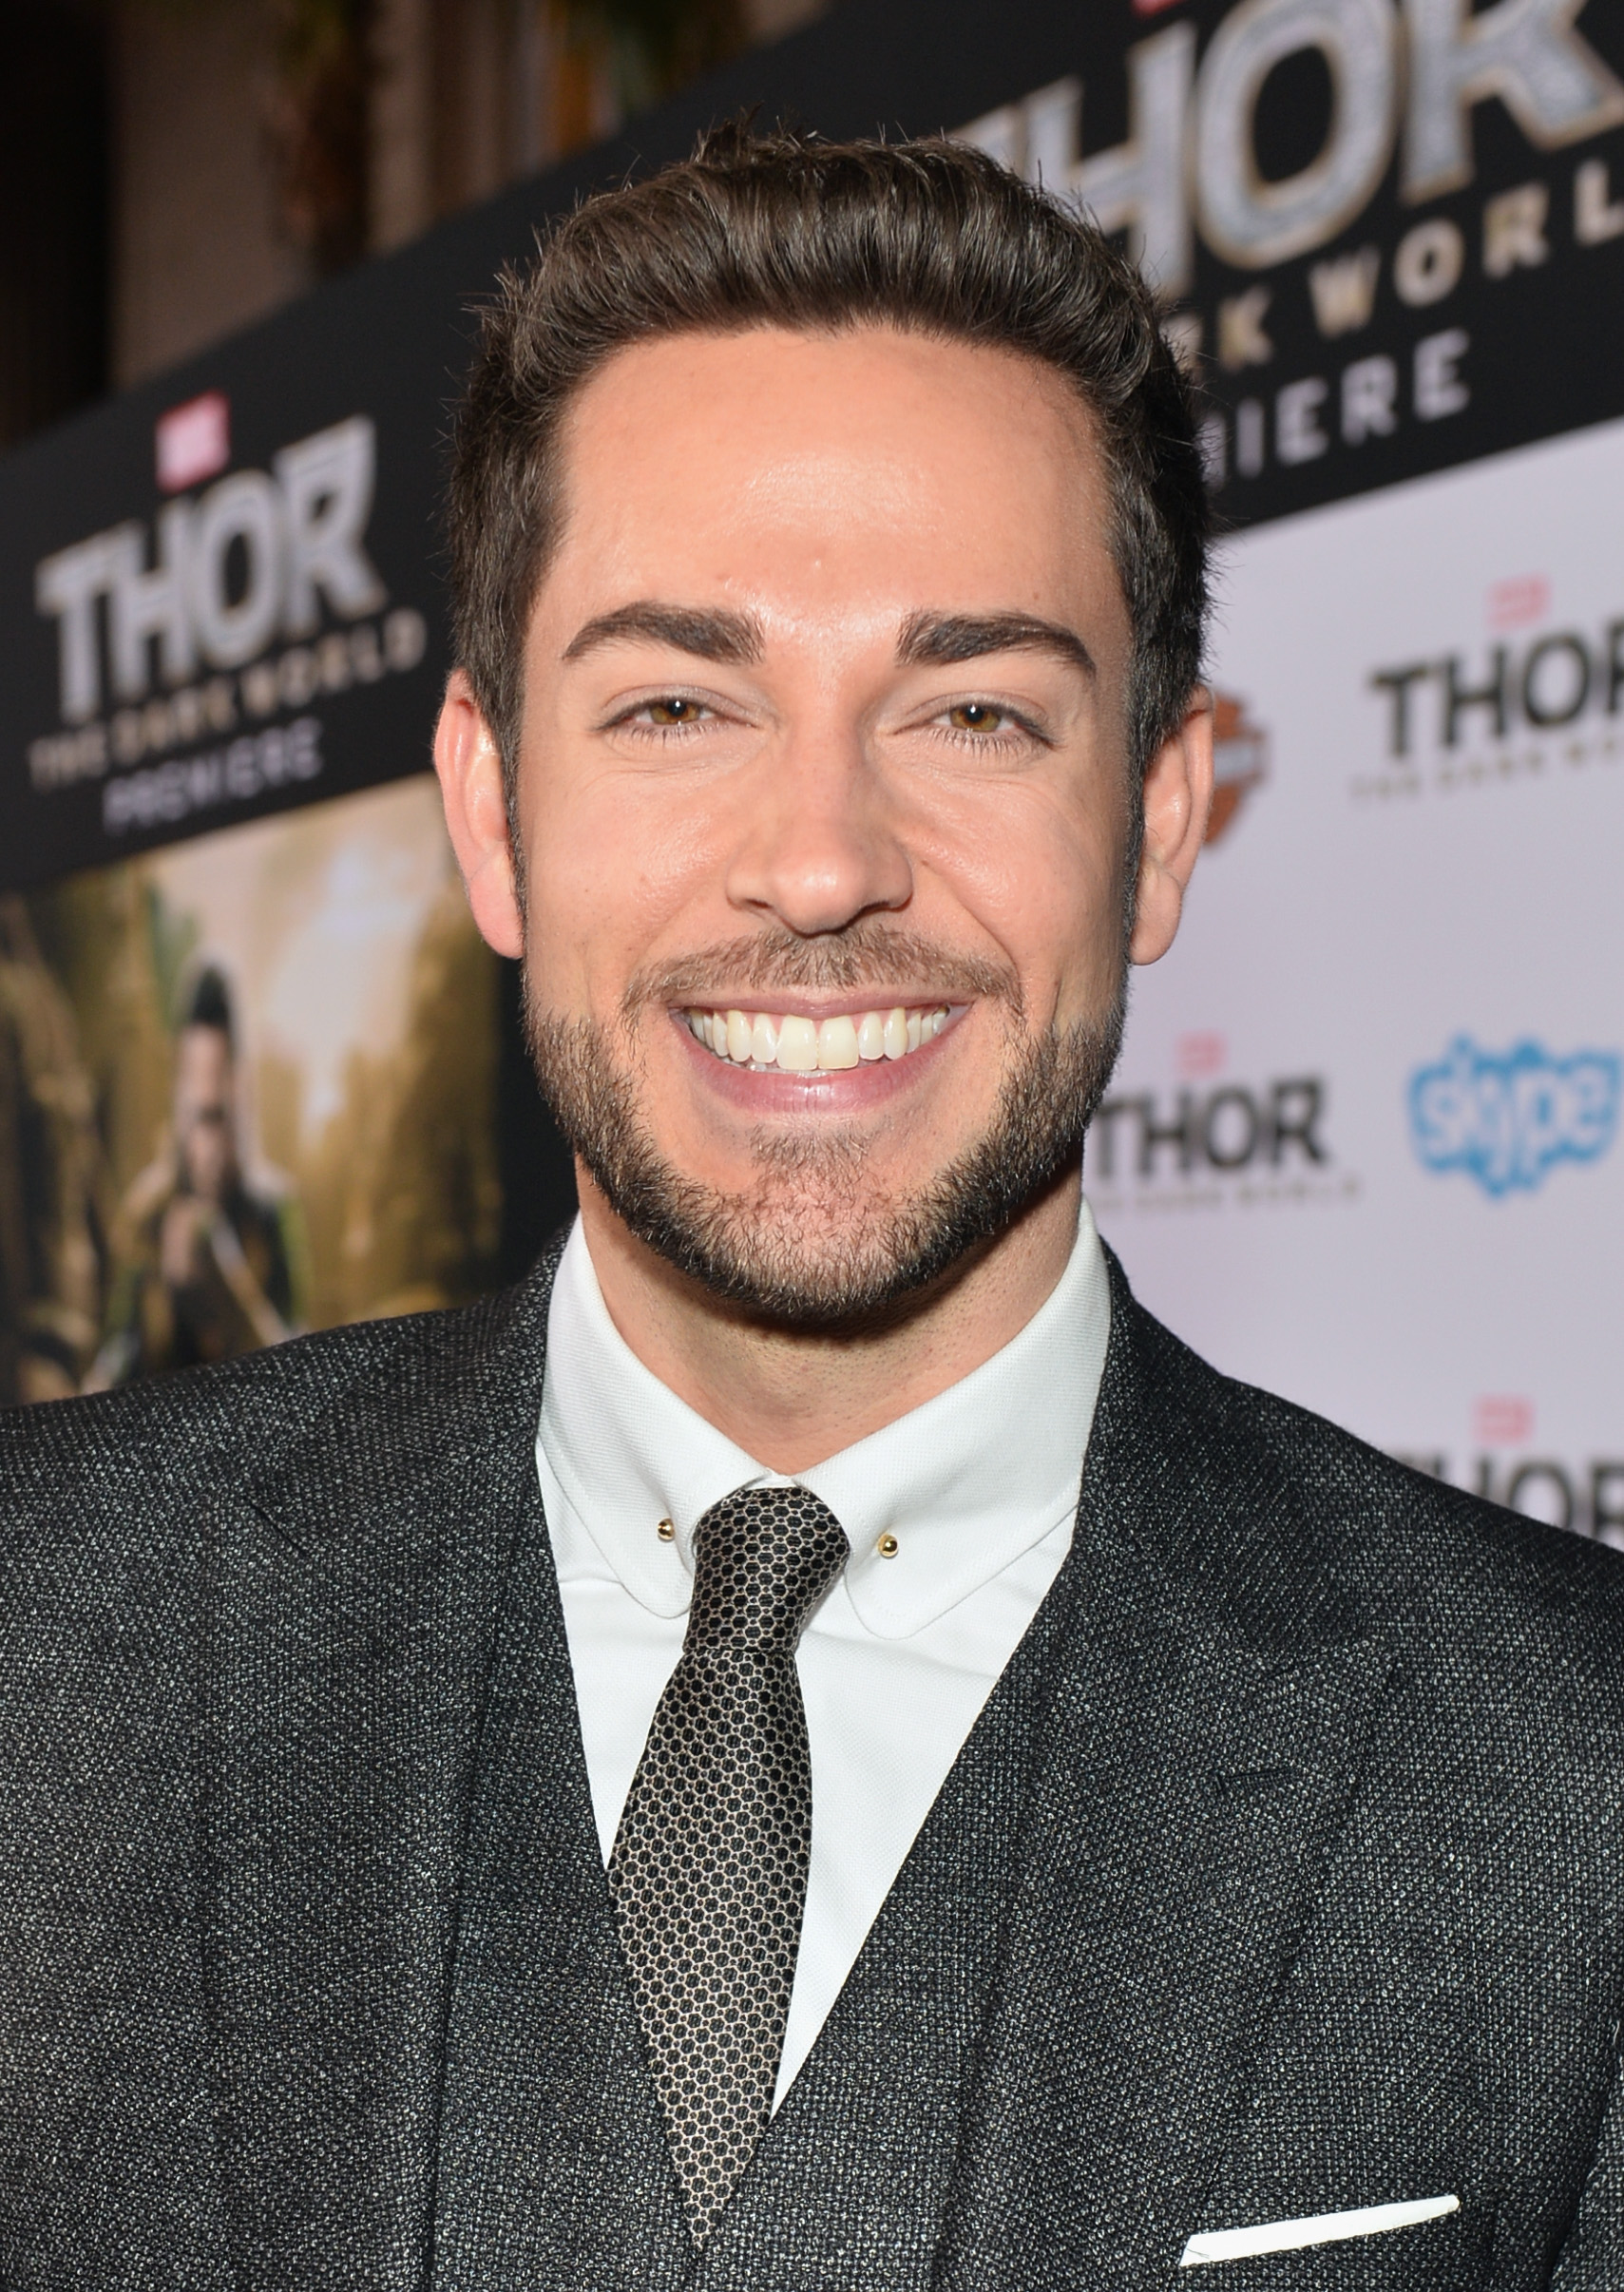 Zachary Levi on the Red Carpet Photo Credit: DreamWorks